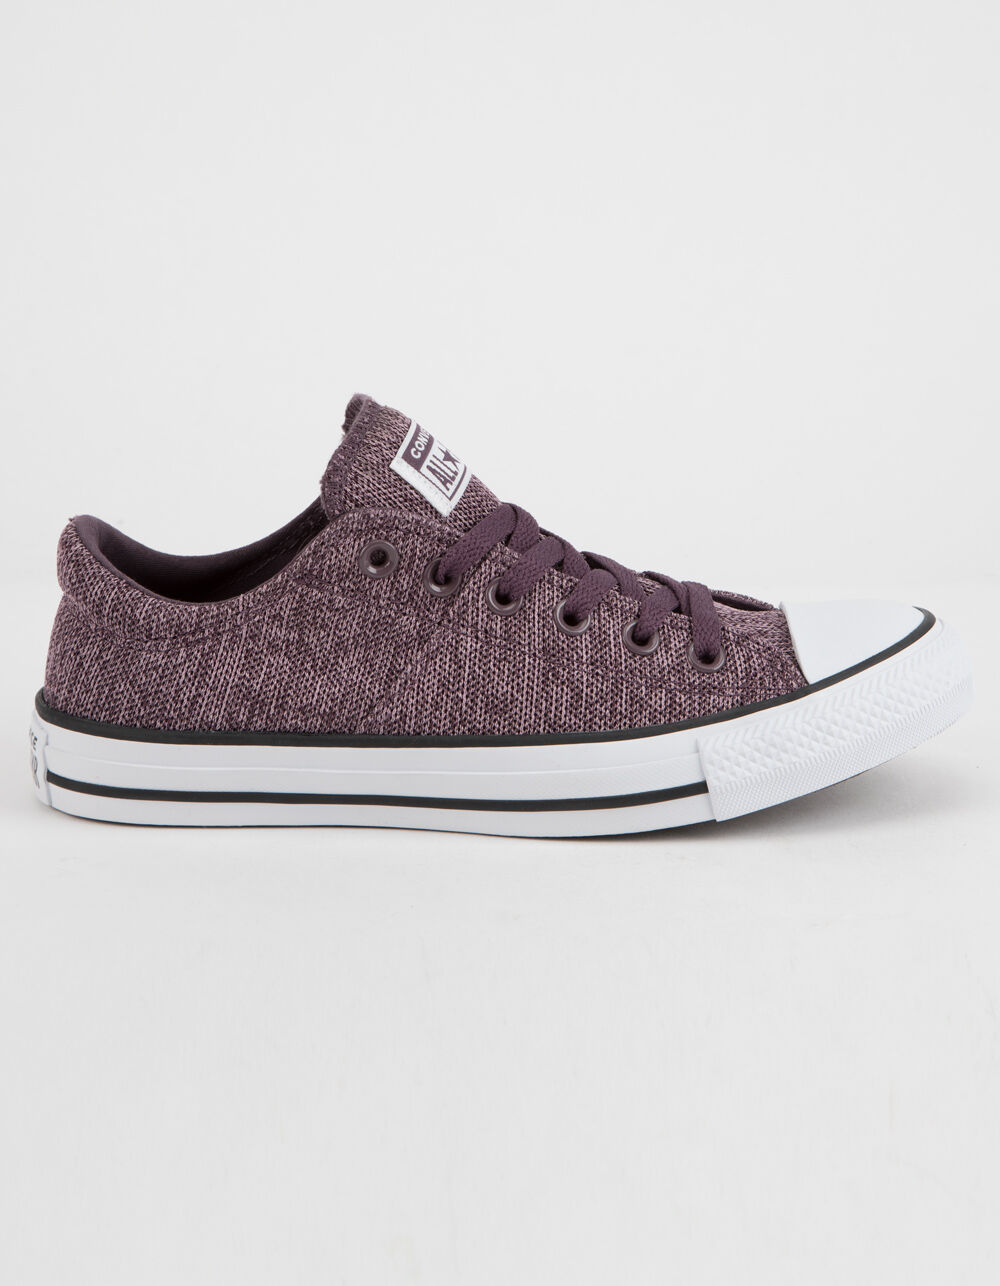 CONVERSE CHUCK TAYLOR ALL STAR MADISON LOW TOP SHOES